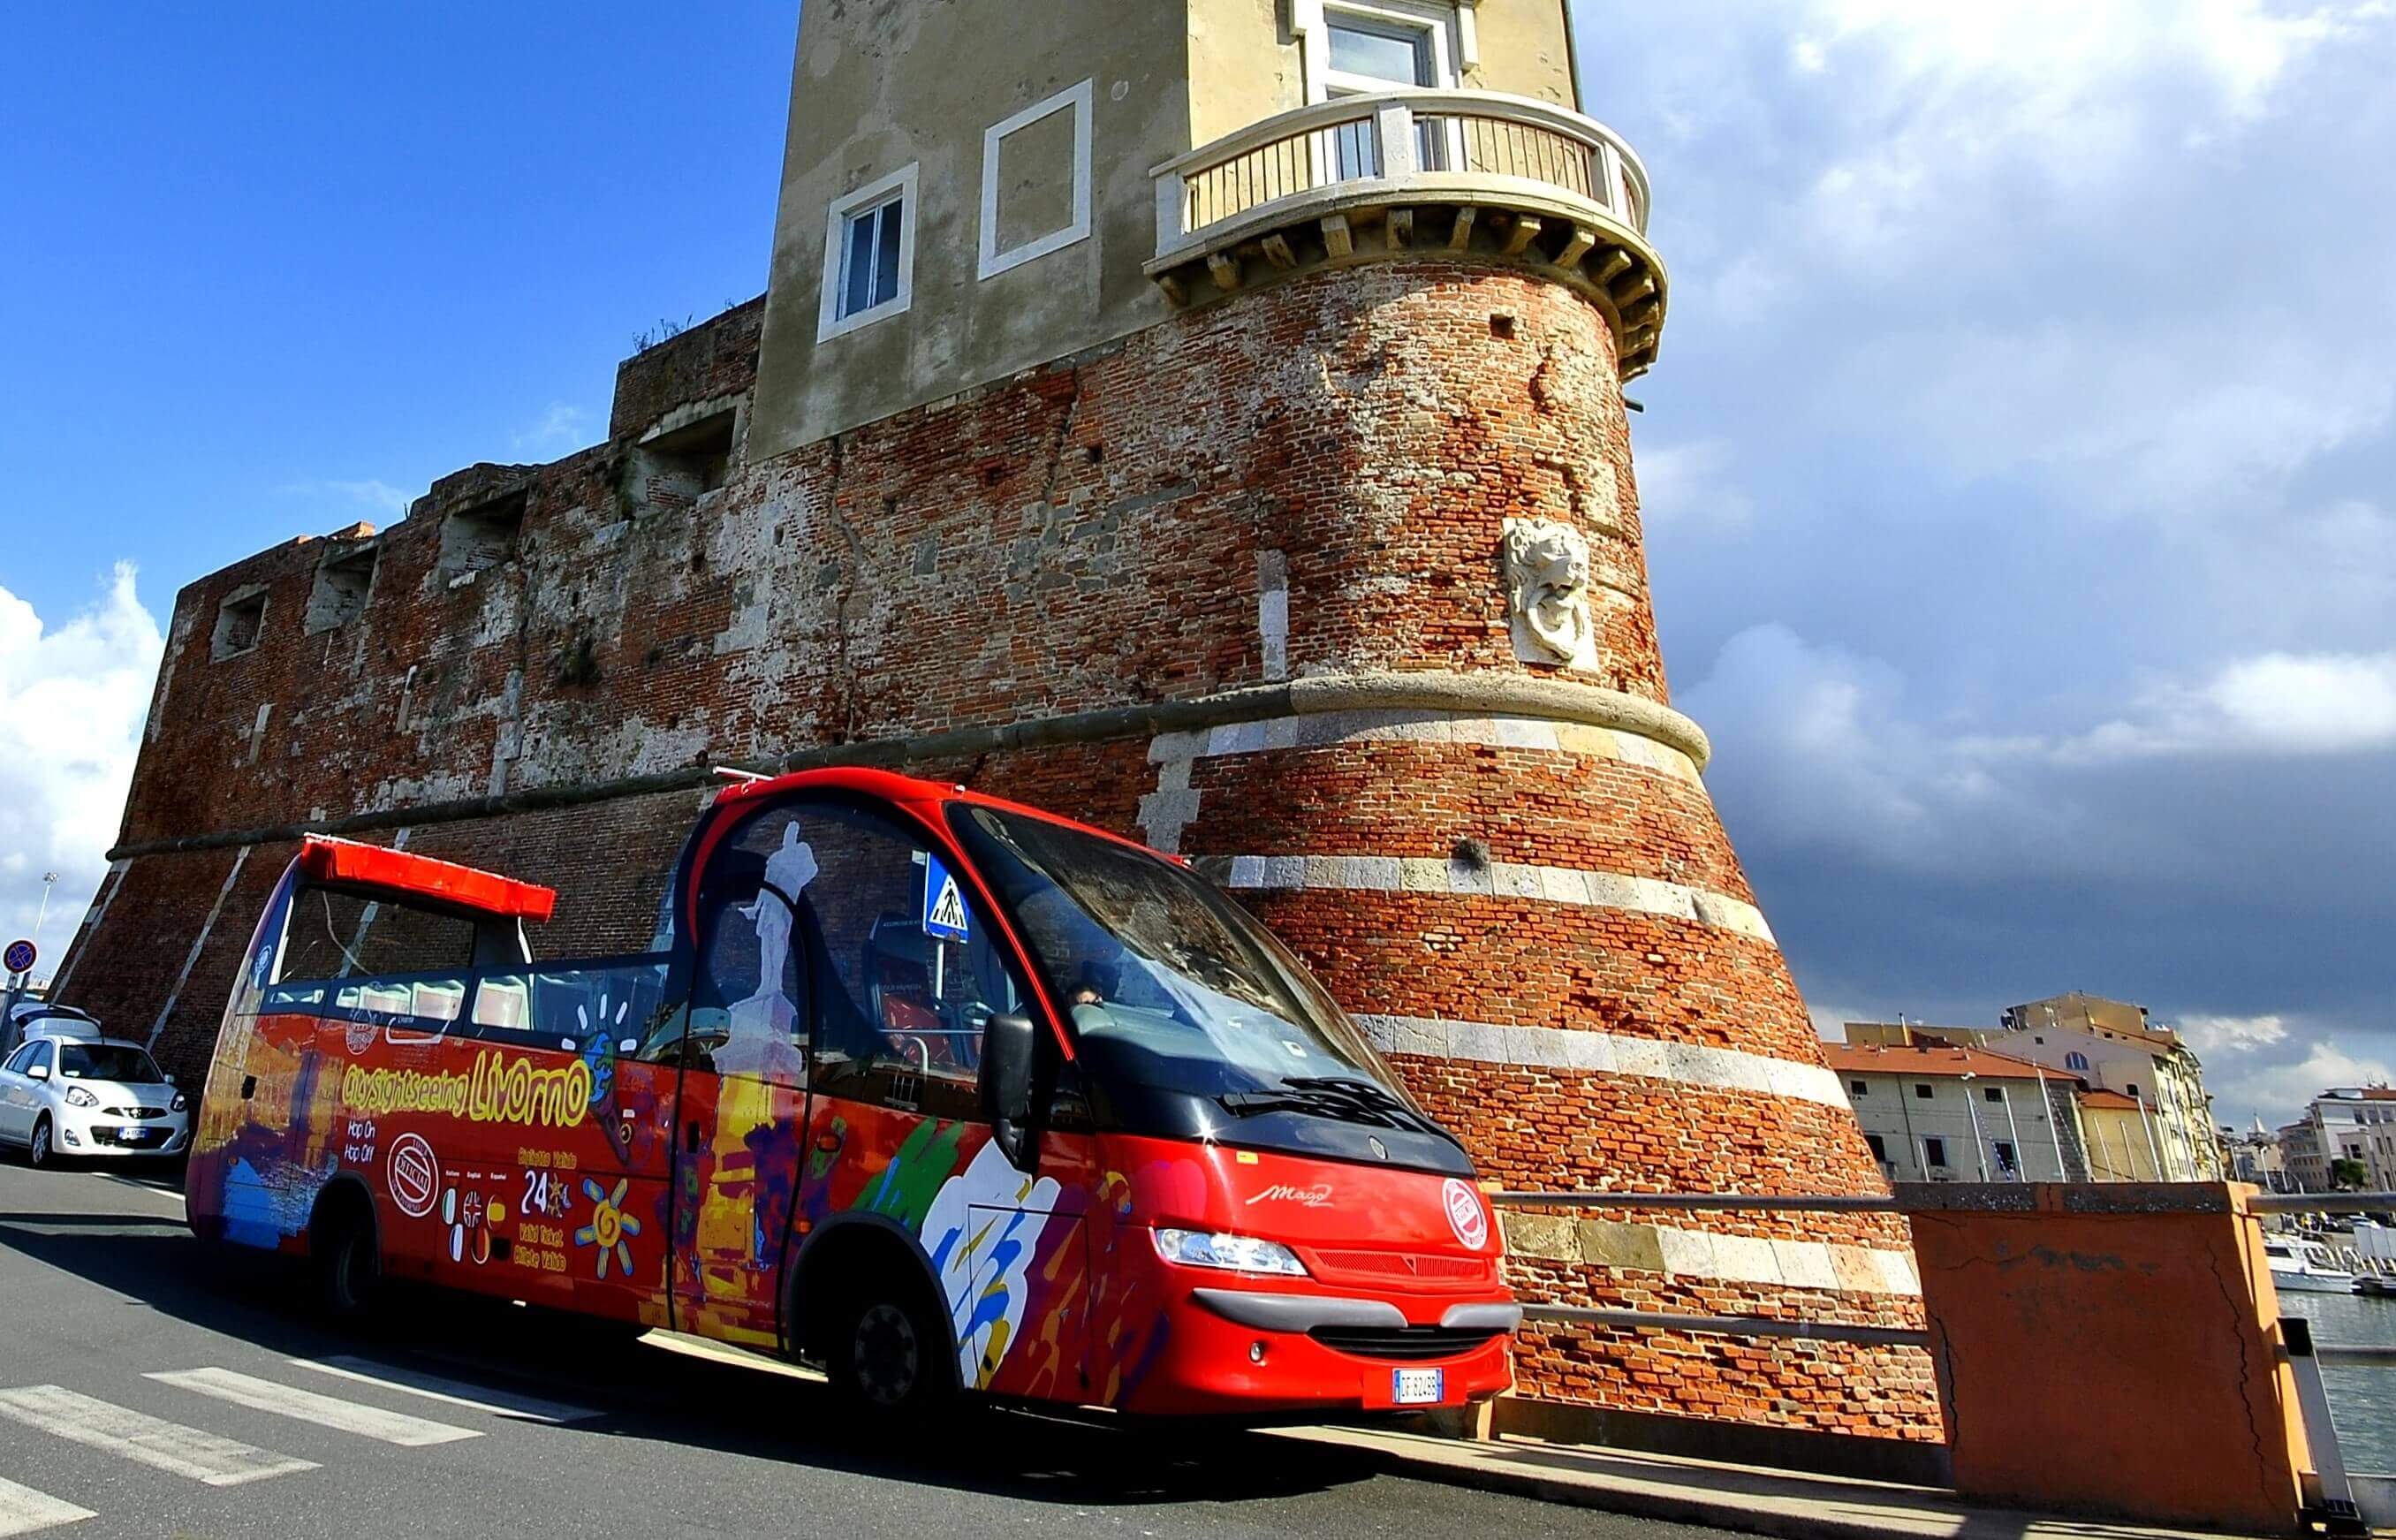 Livorno Hop-on, Hop-off Bus Tour